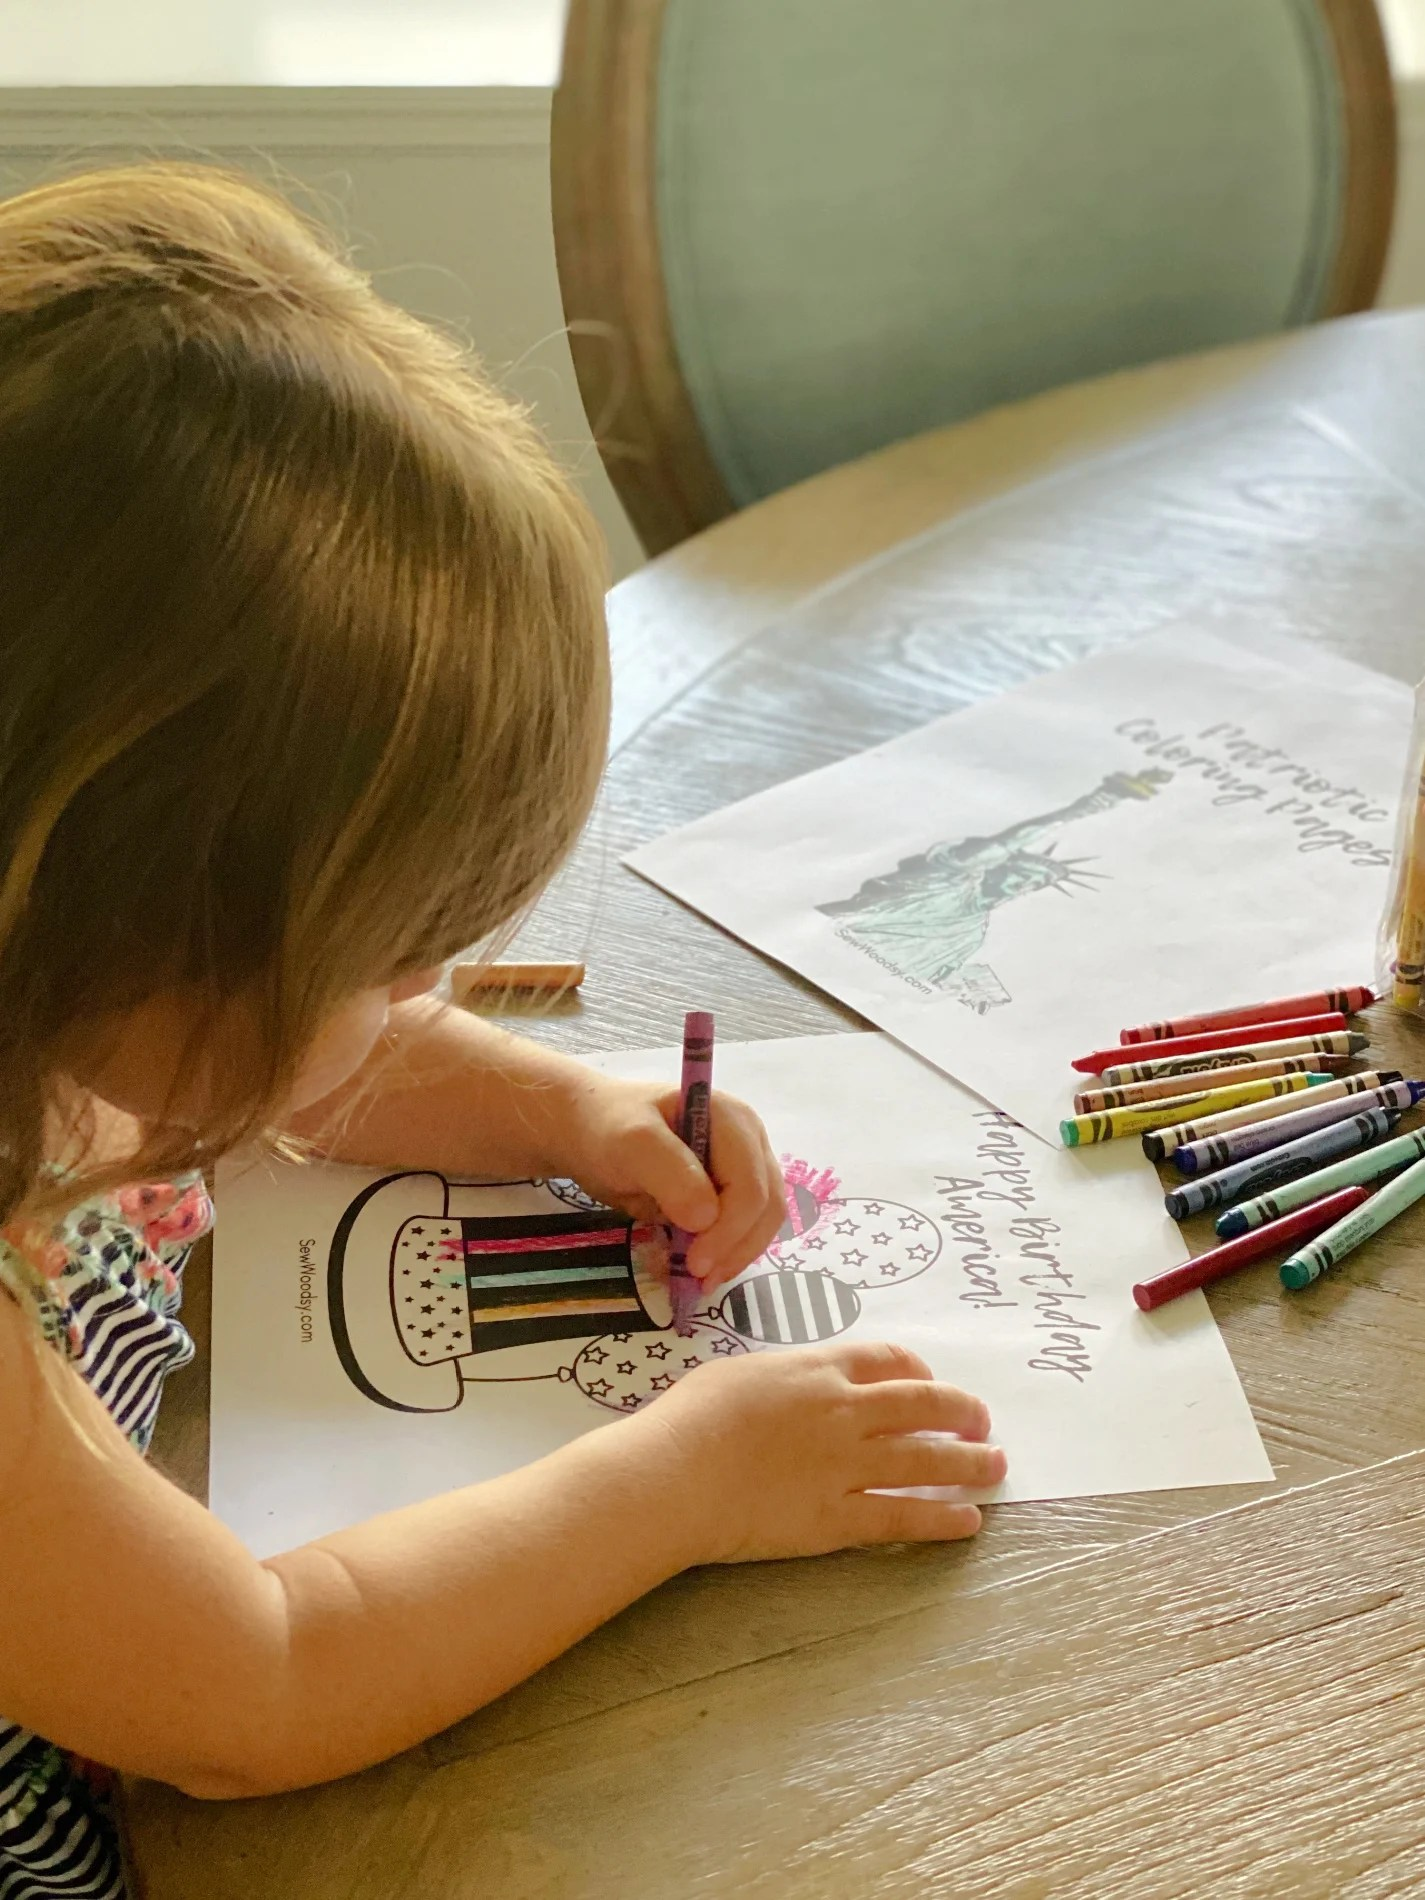 Little girl coloring at a wood table with crayons.